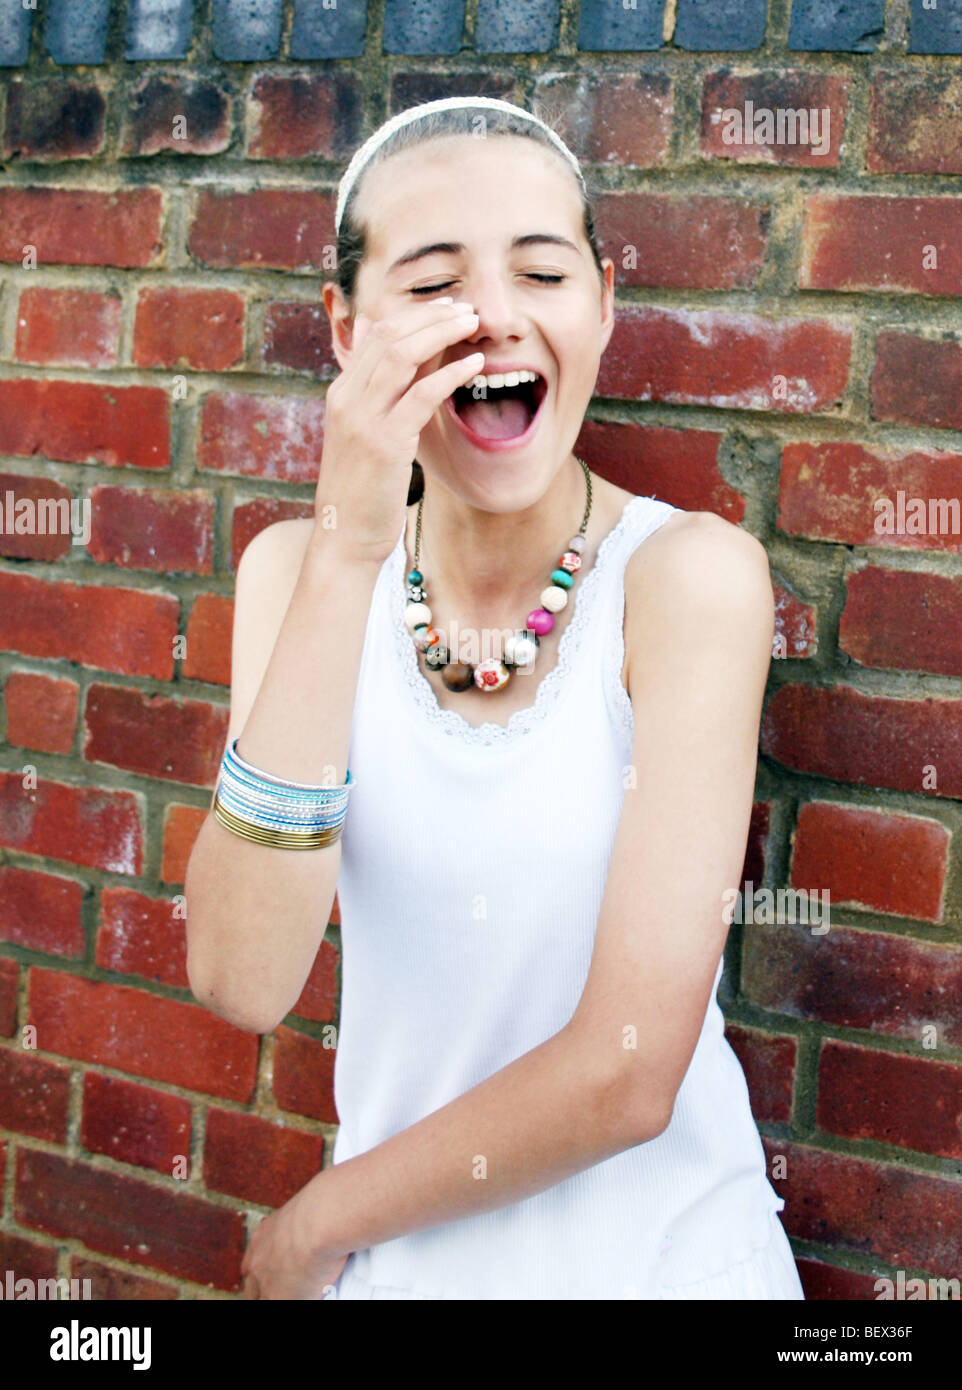 girl crying with laughter - Stock Image